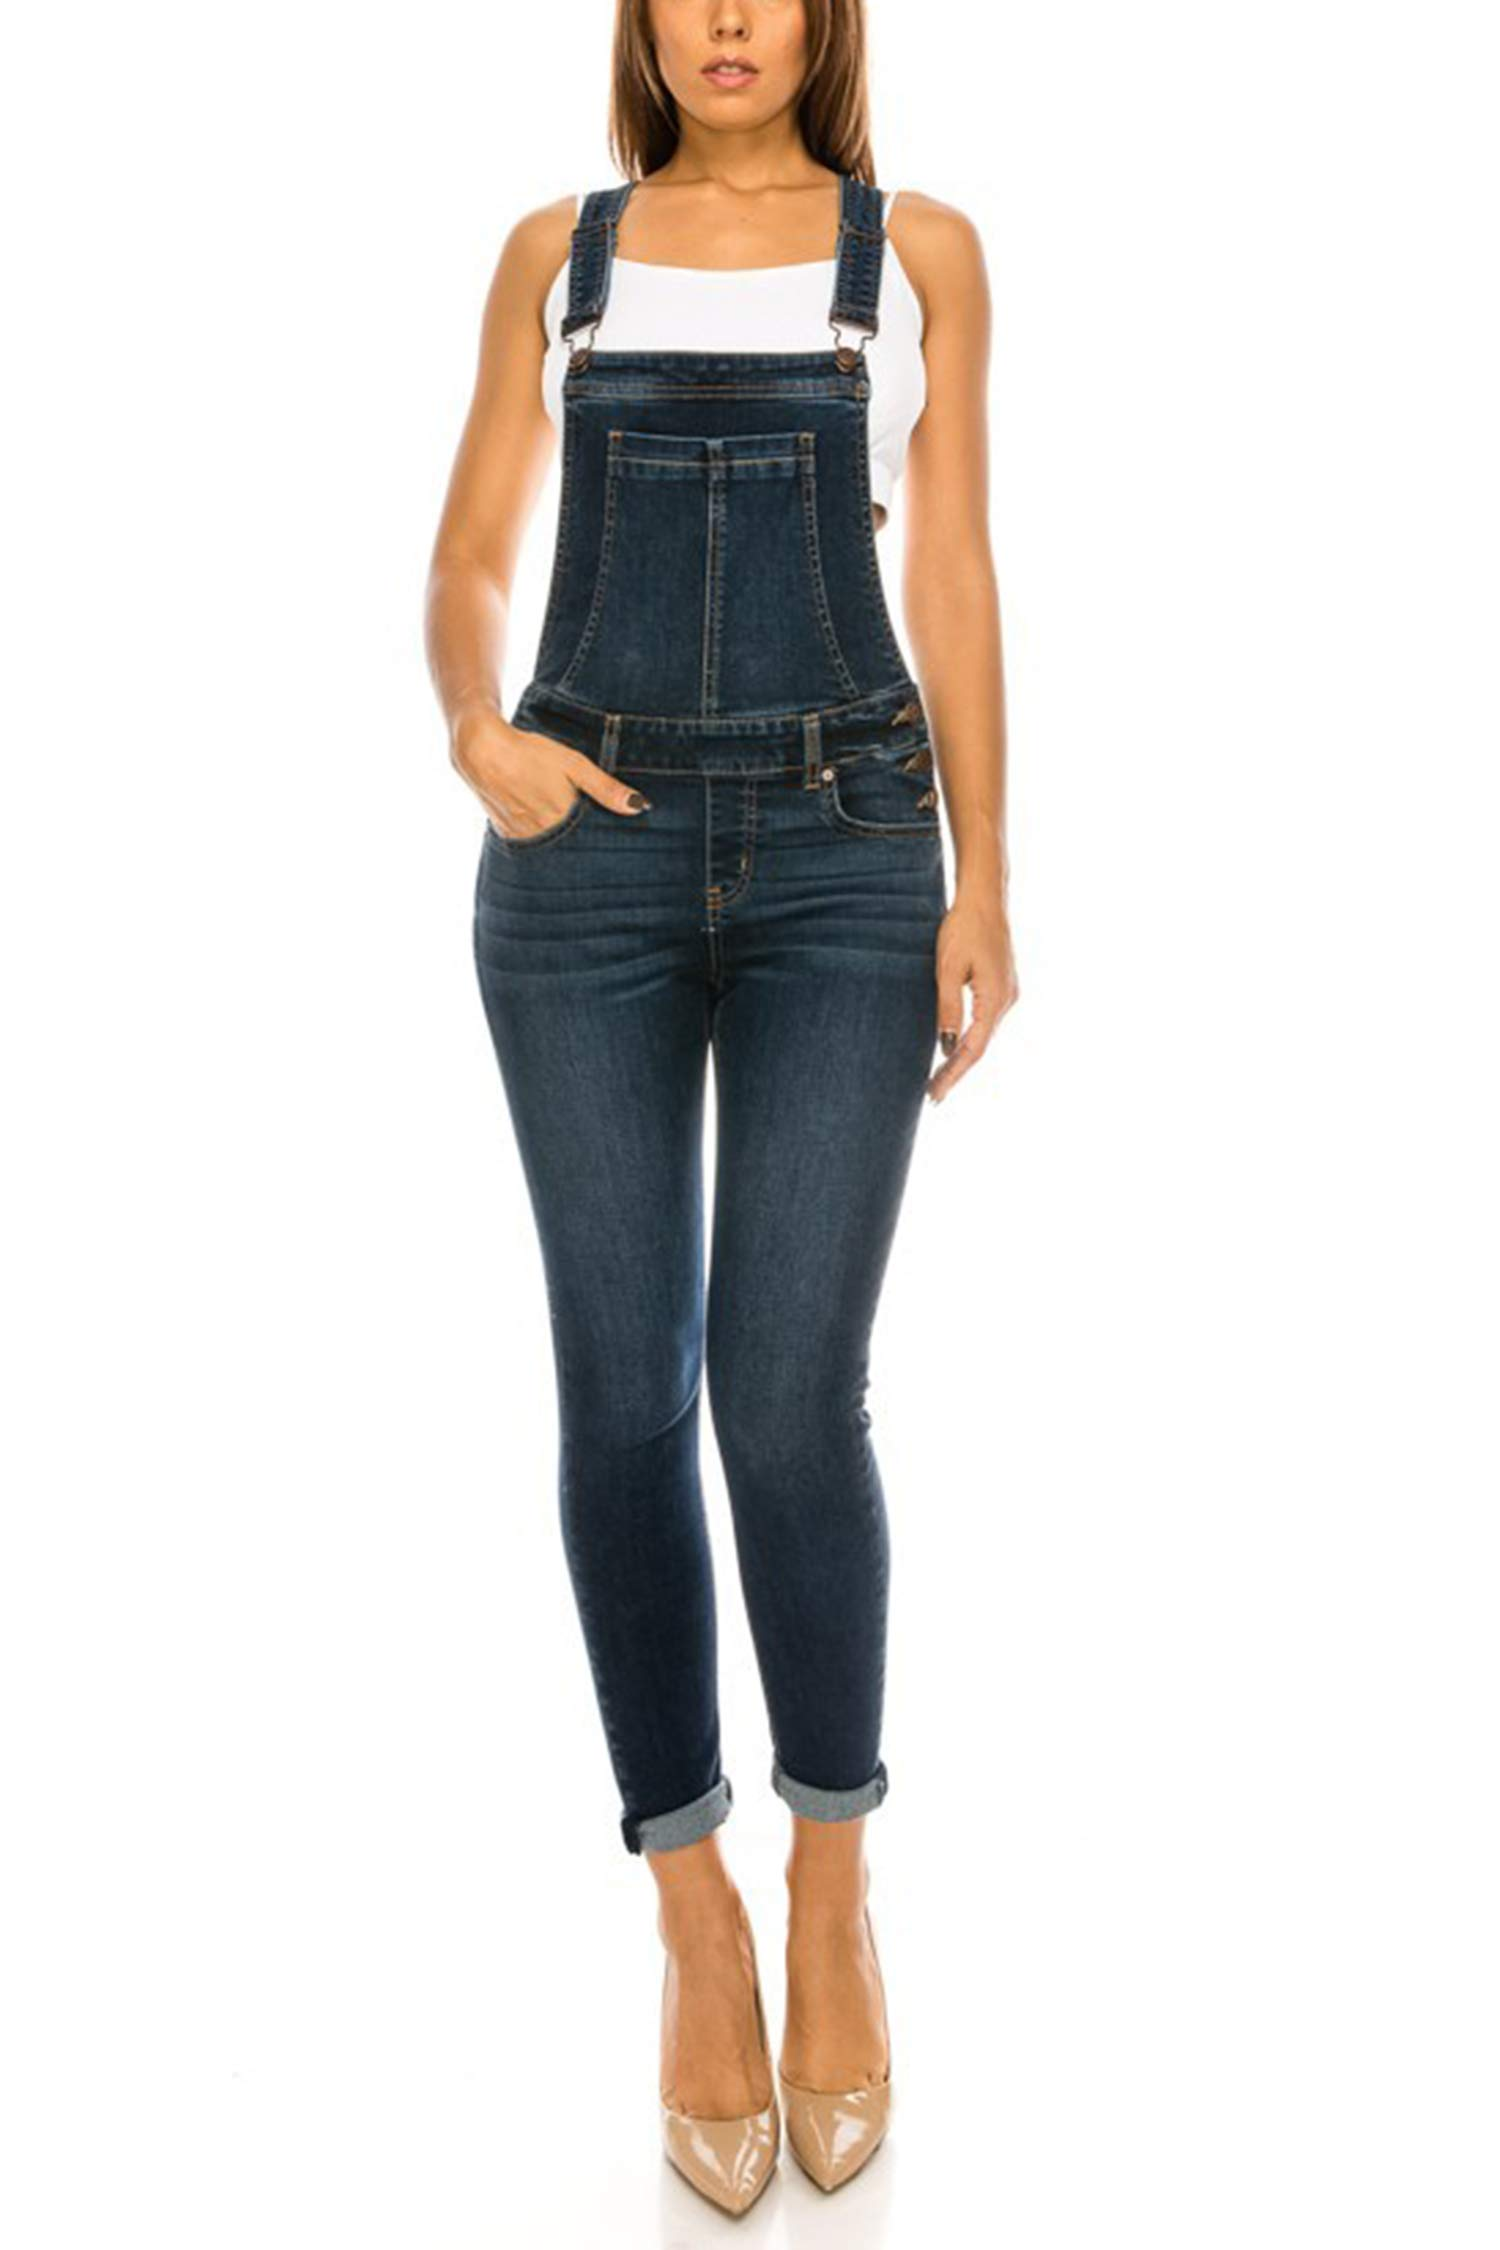 4b051a8762e4 Vialumi Women s Juniors Fitted Denim EnJean Overalls product image